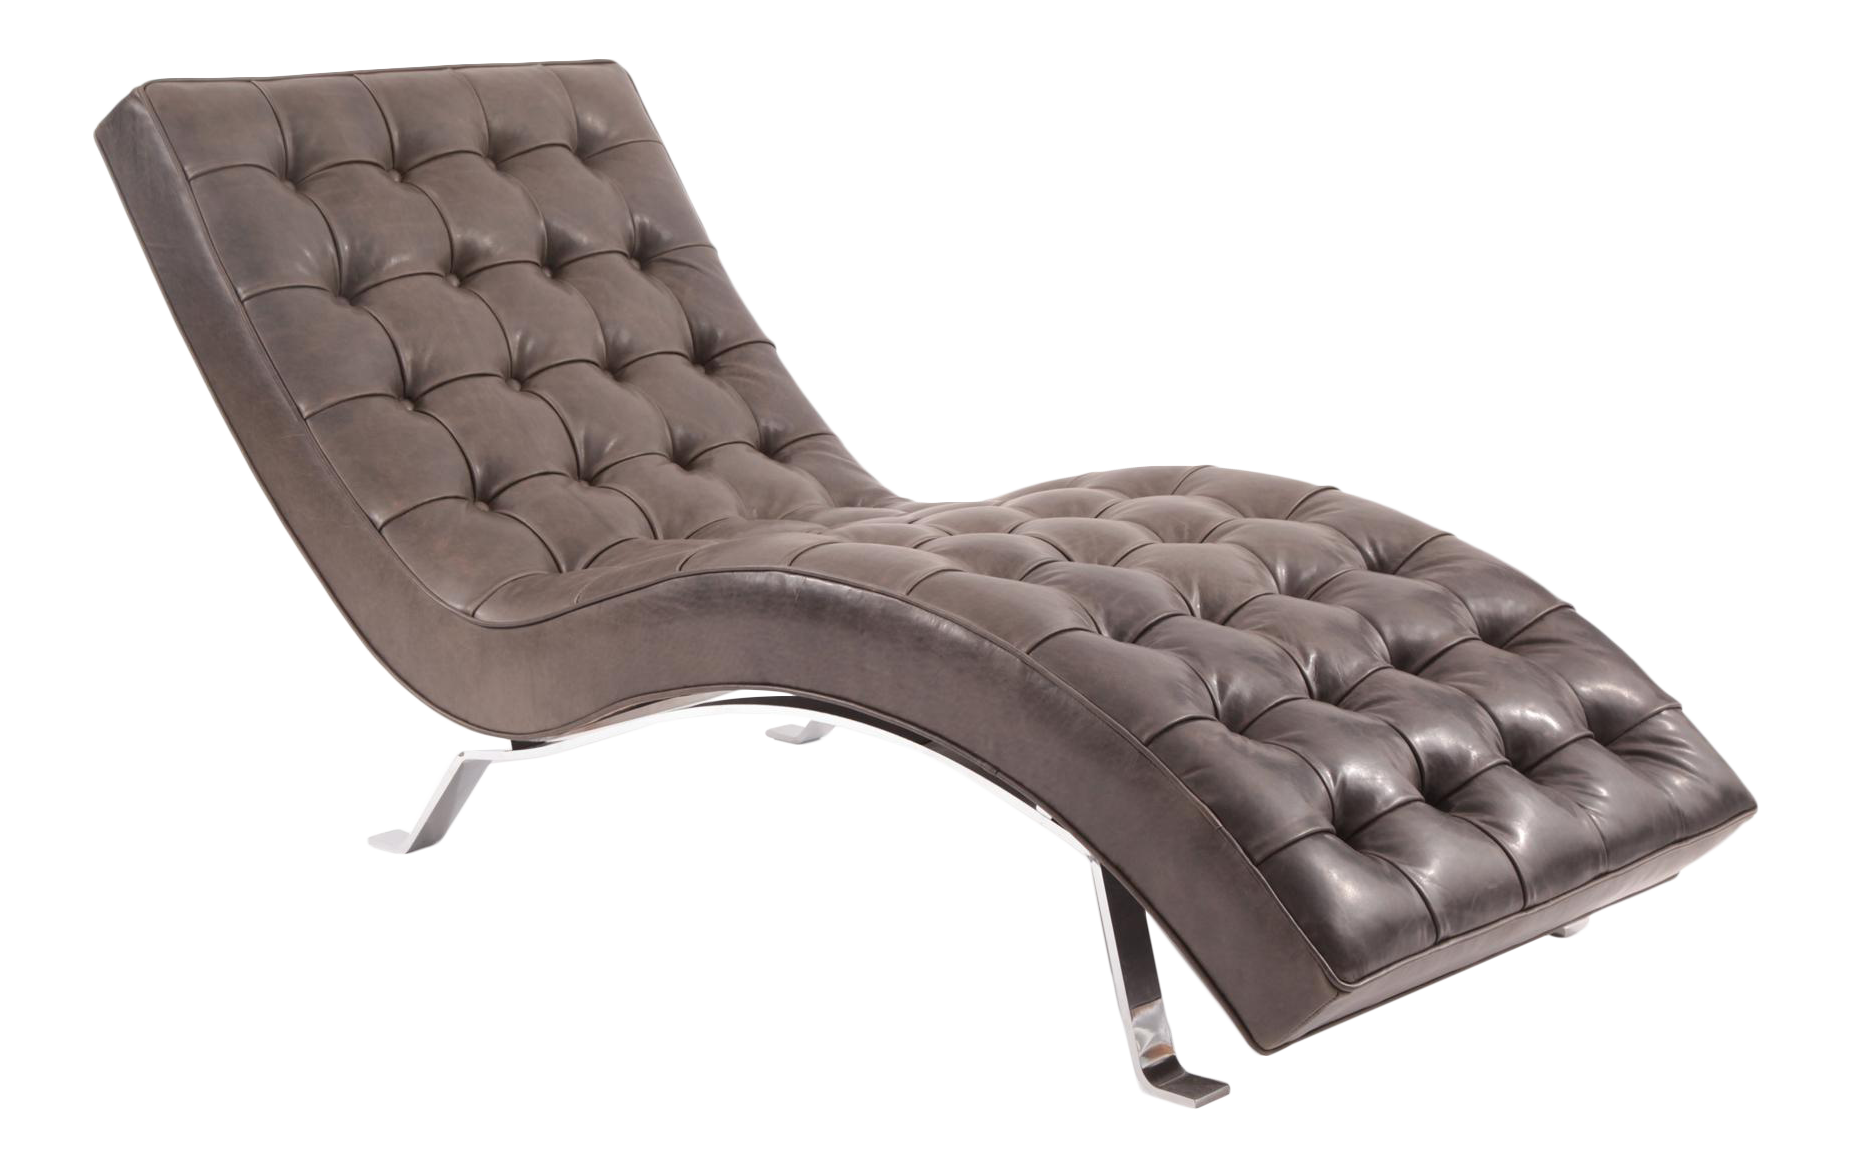 Button tufted gray leather chaise longue chairish for Button tufted chaise settee green